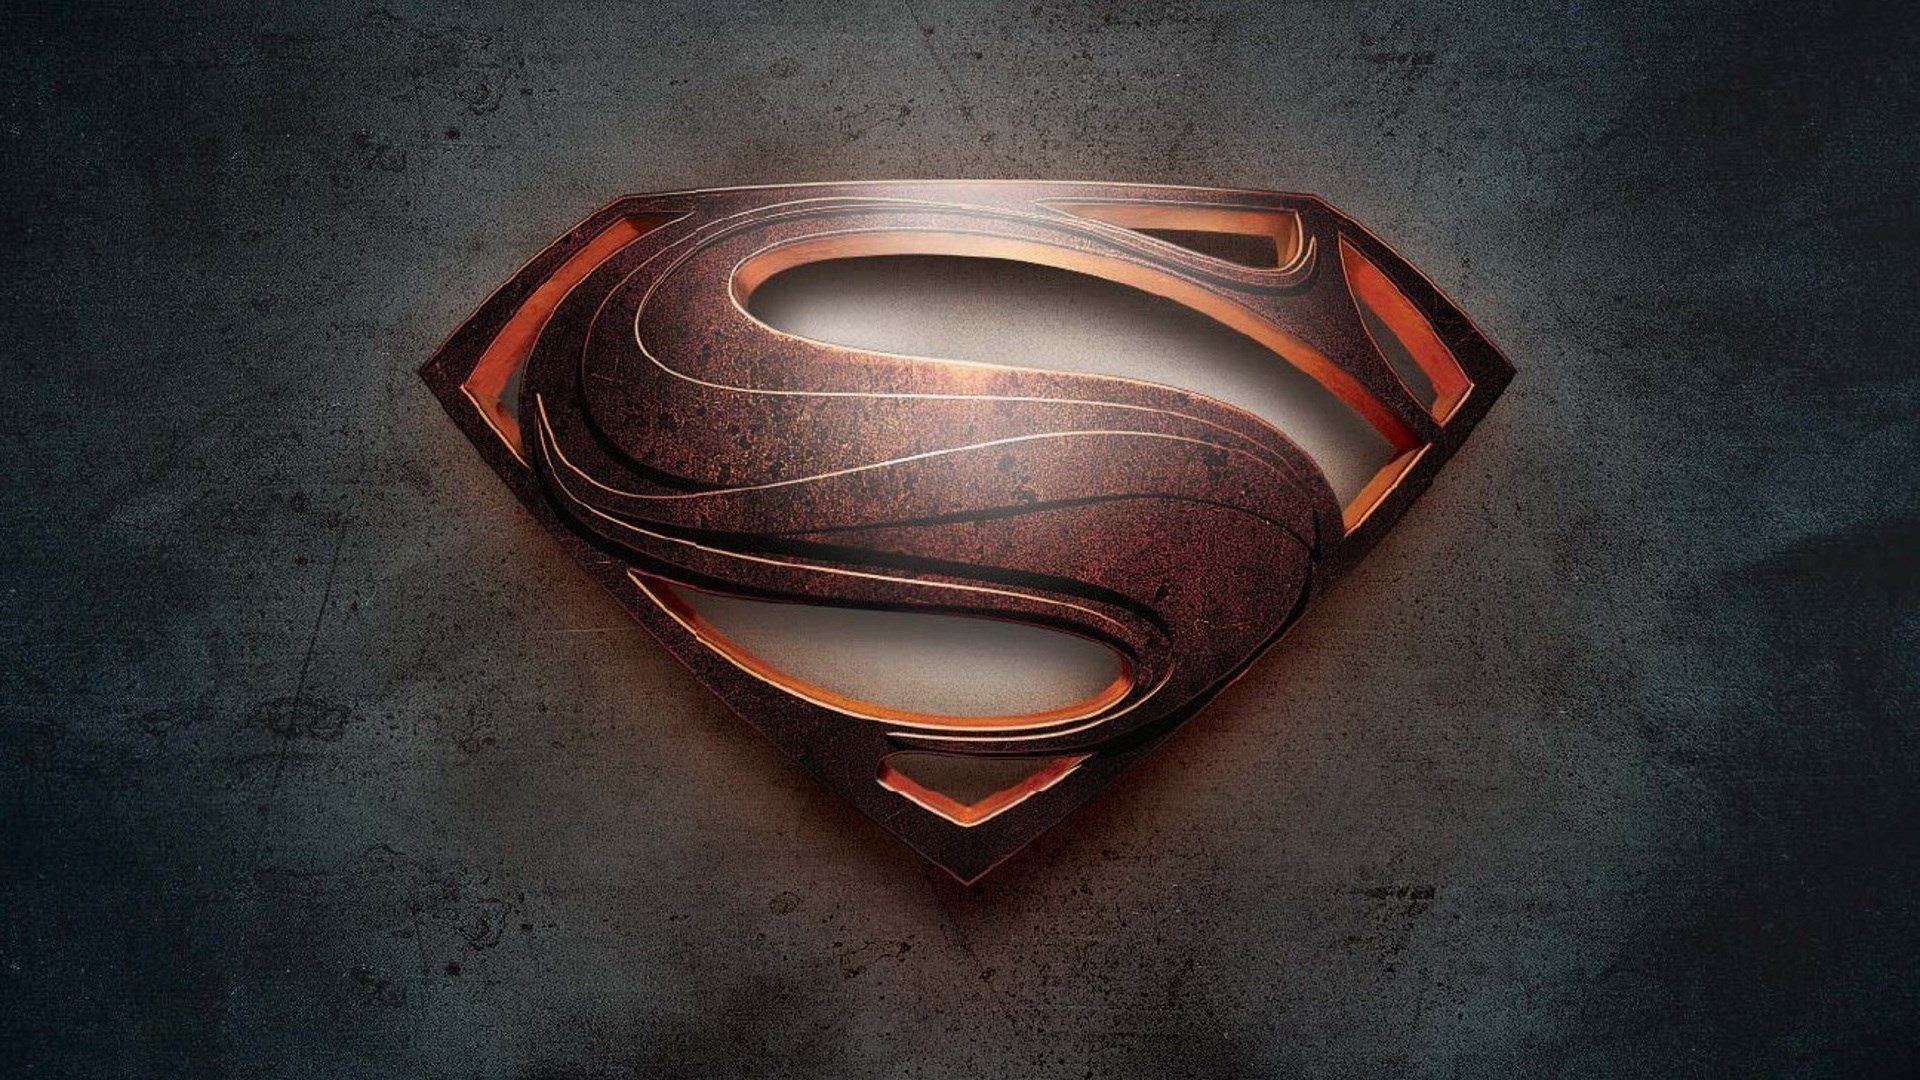 1920x1080 Man Of Steel Pc Wallpaper Free Download Hd Superman Hd